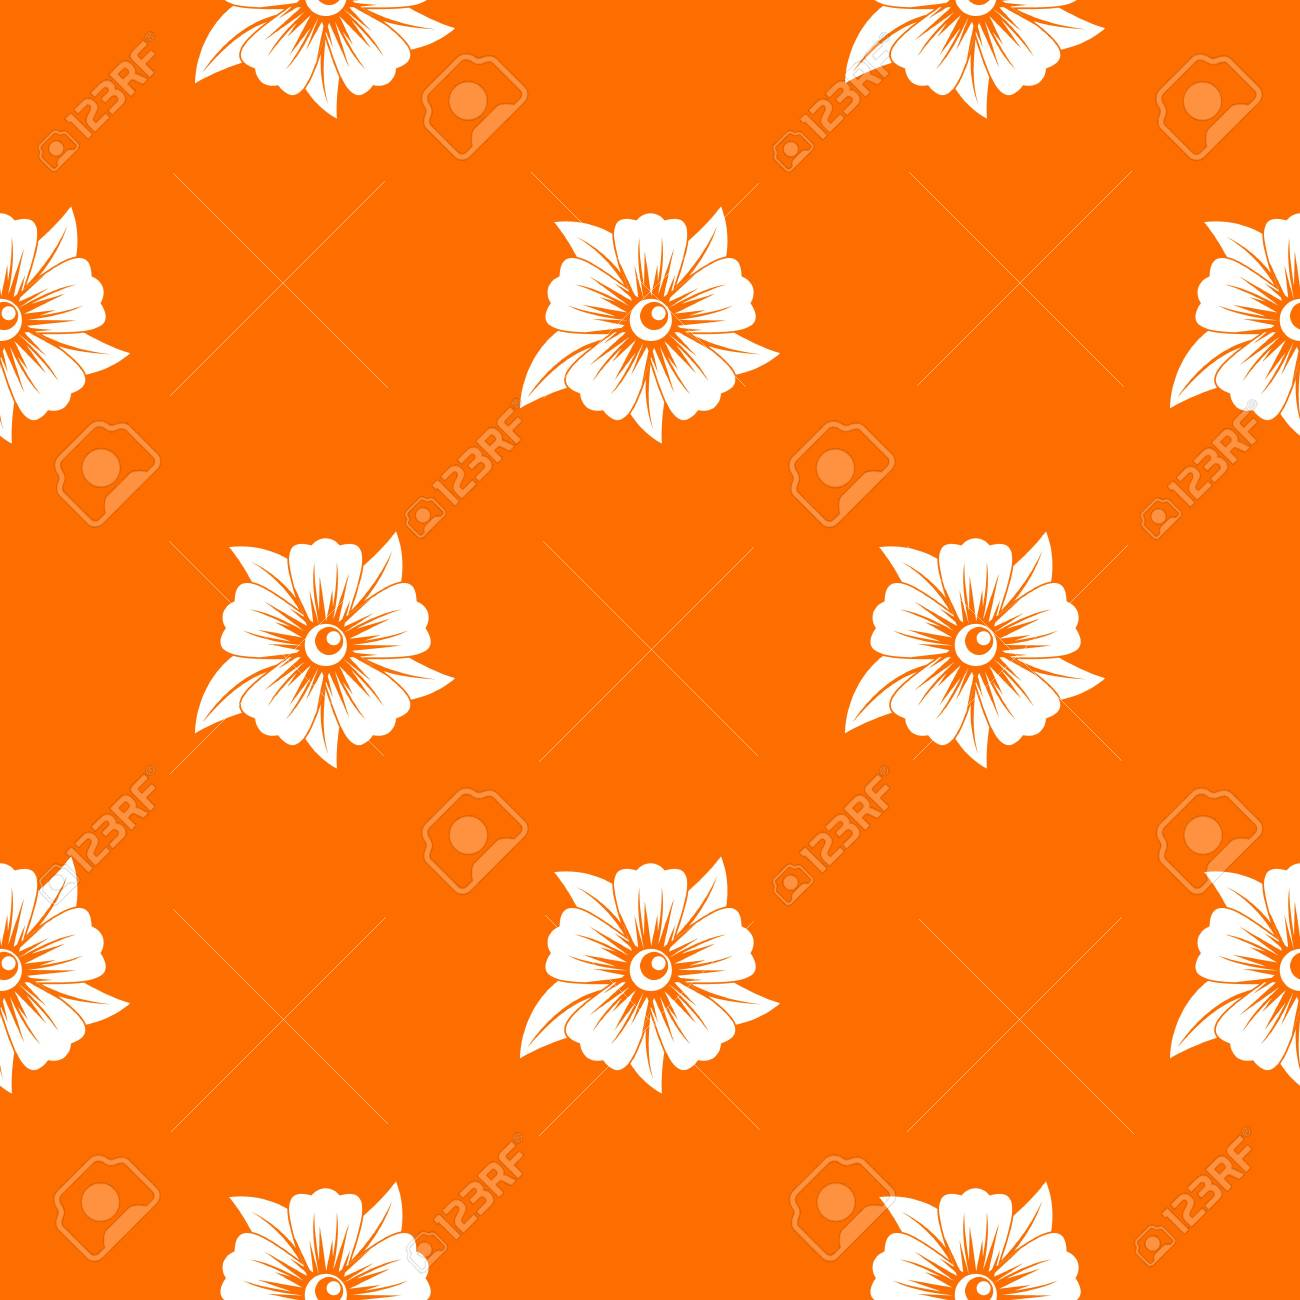 flower pattern repeat seamless in orange color for any design rh 123rf com vintage flower vector pattern vector flower patterns background free download